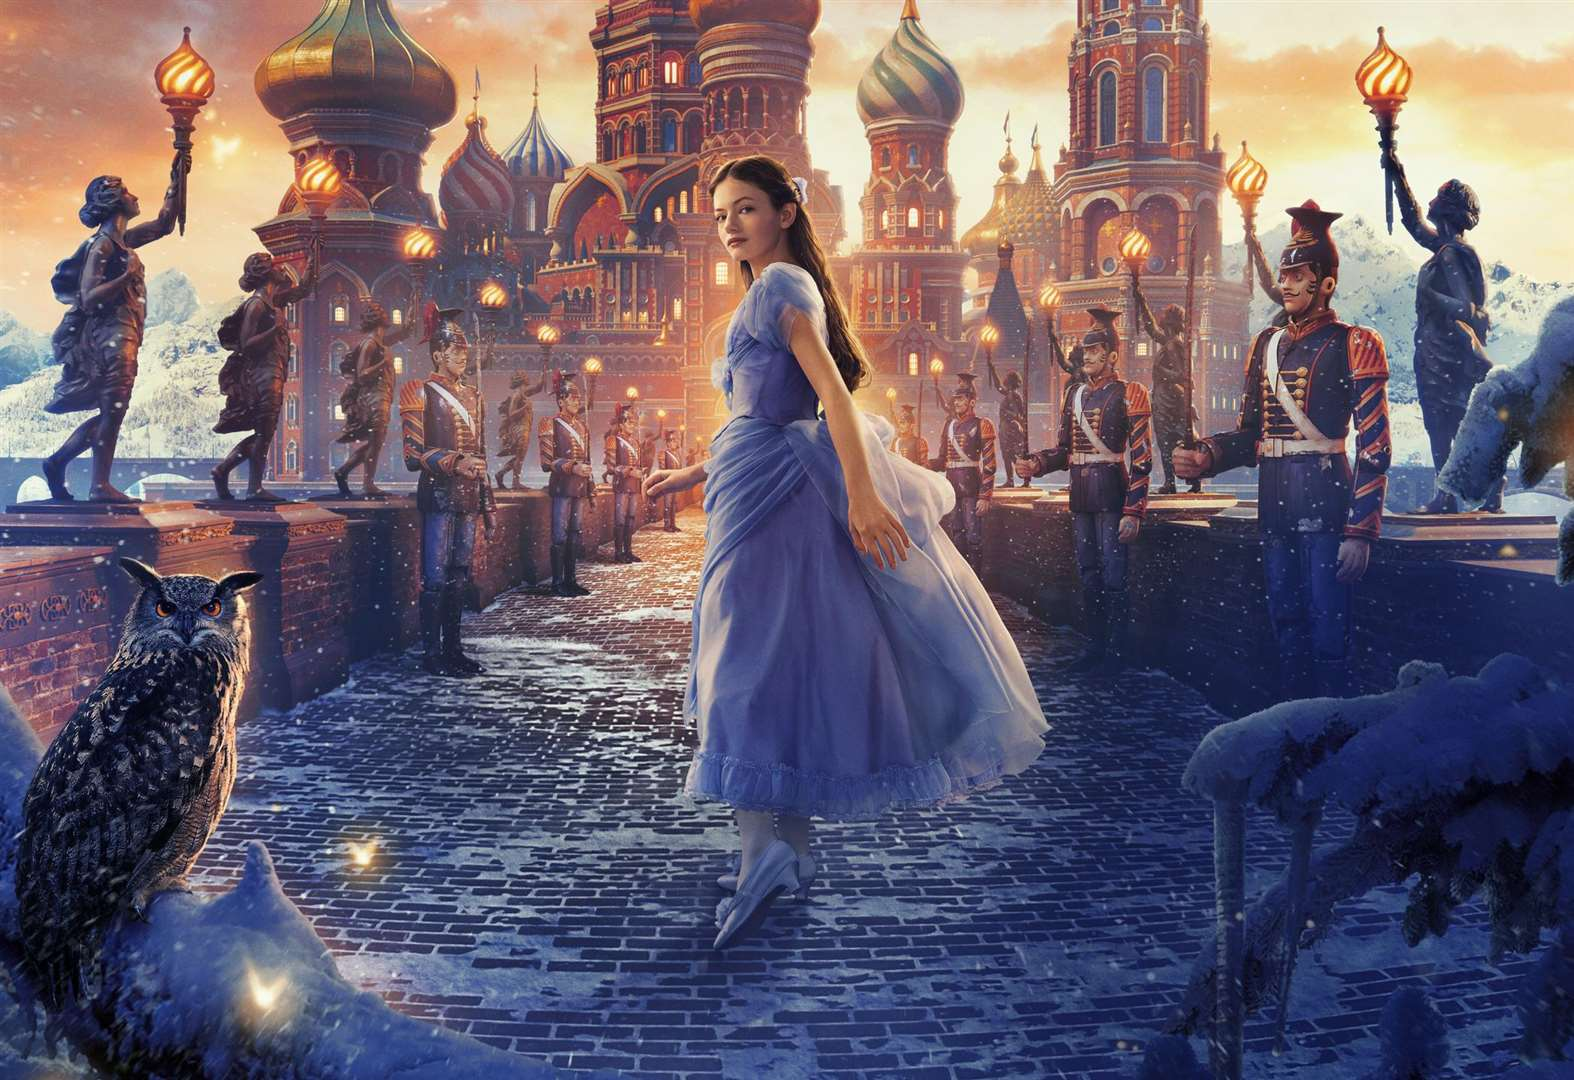 FILM REVIEW: THE NUTCRACKER & THE FOUR REALMS (12A)